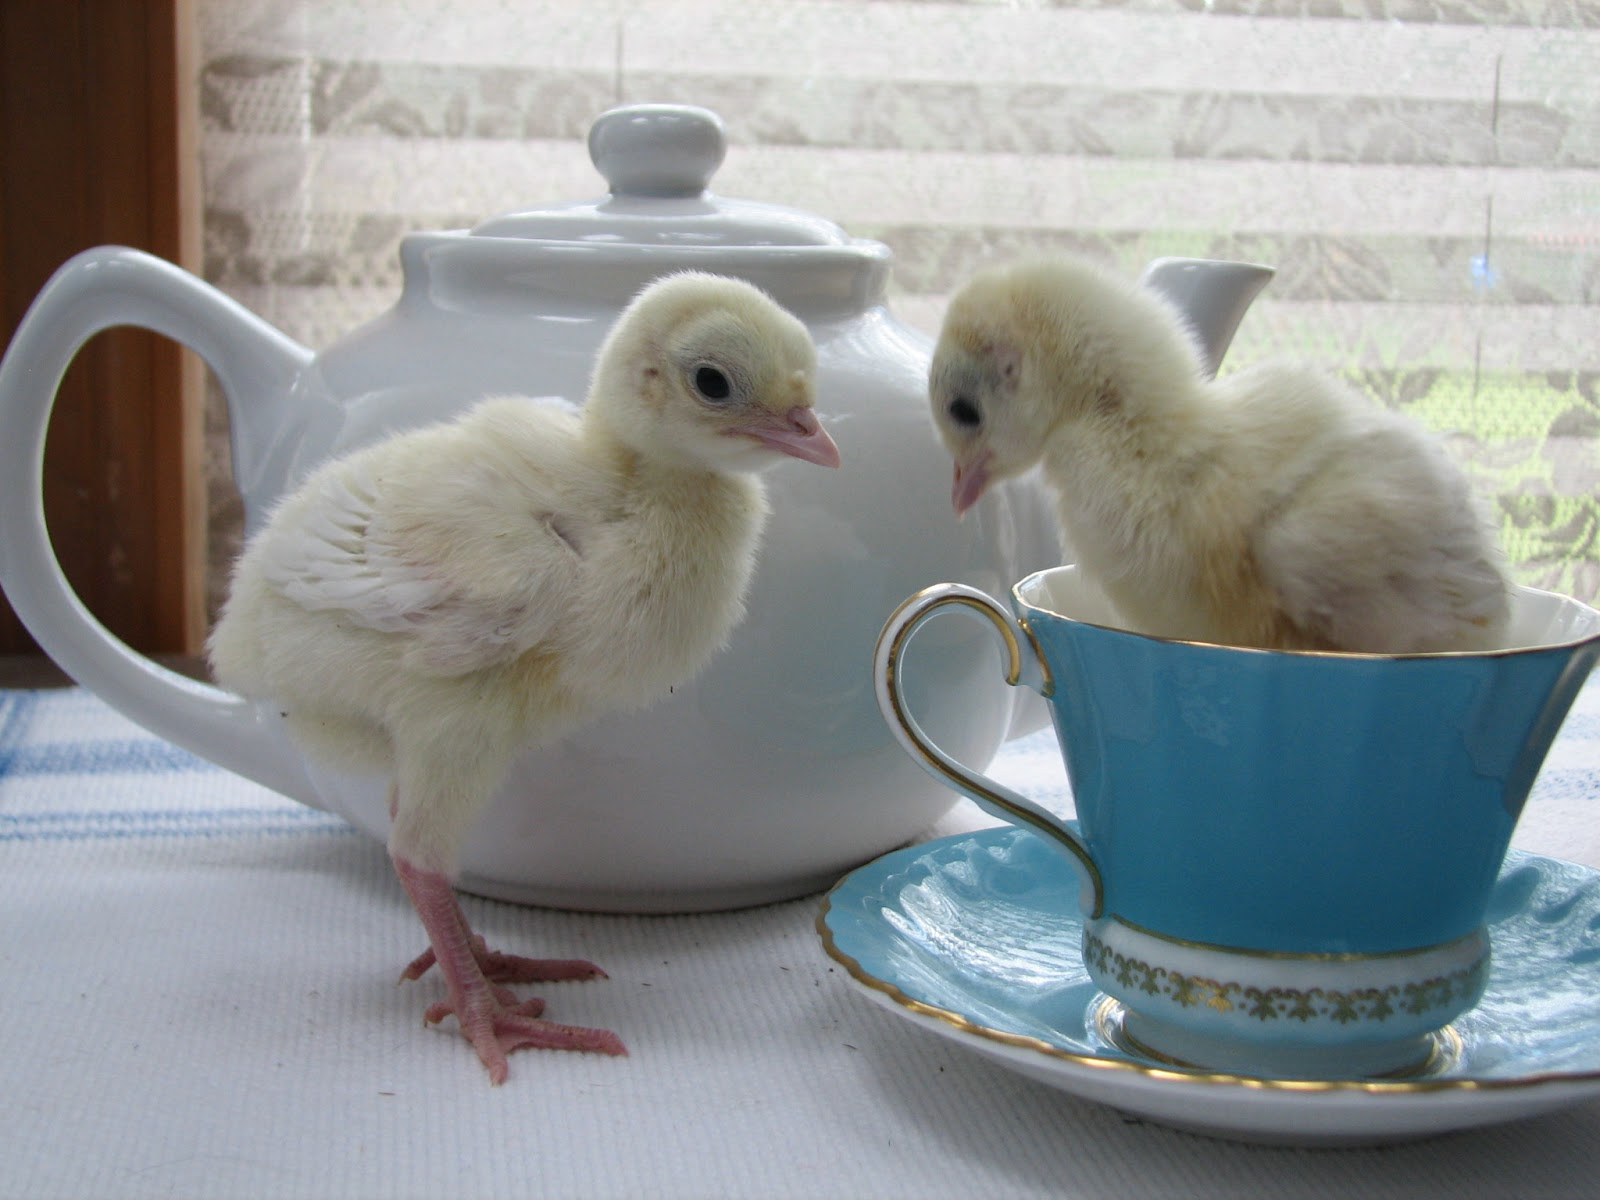 Just Chickens My Midget White Turkeys As Poults